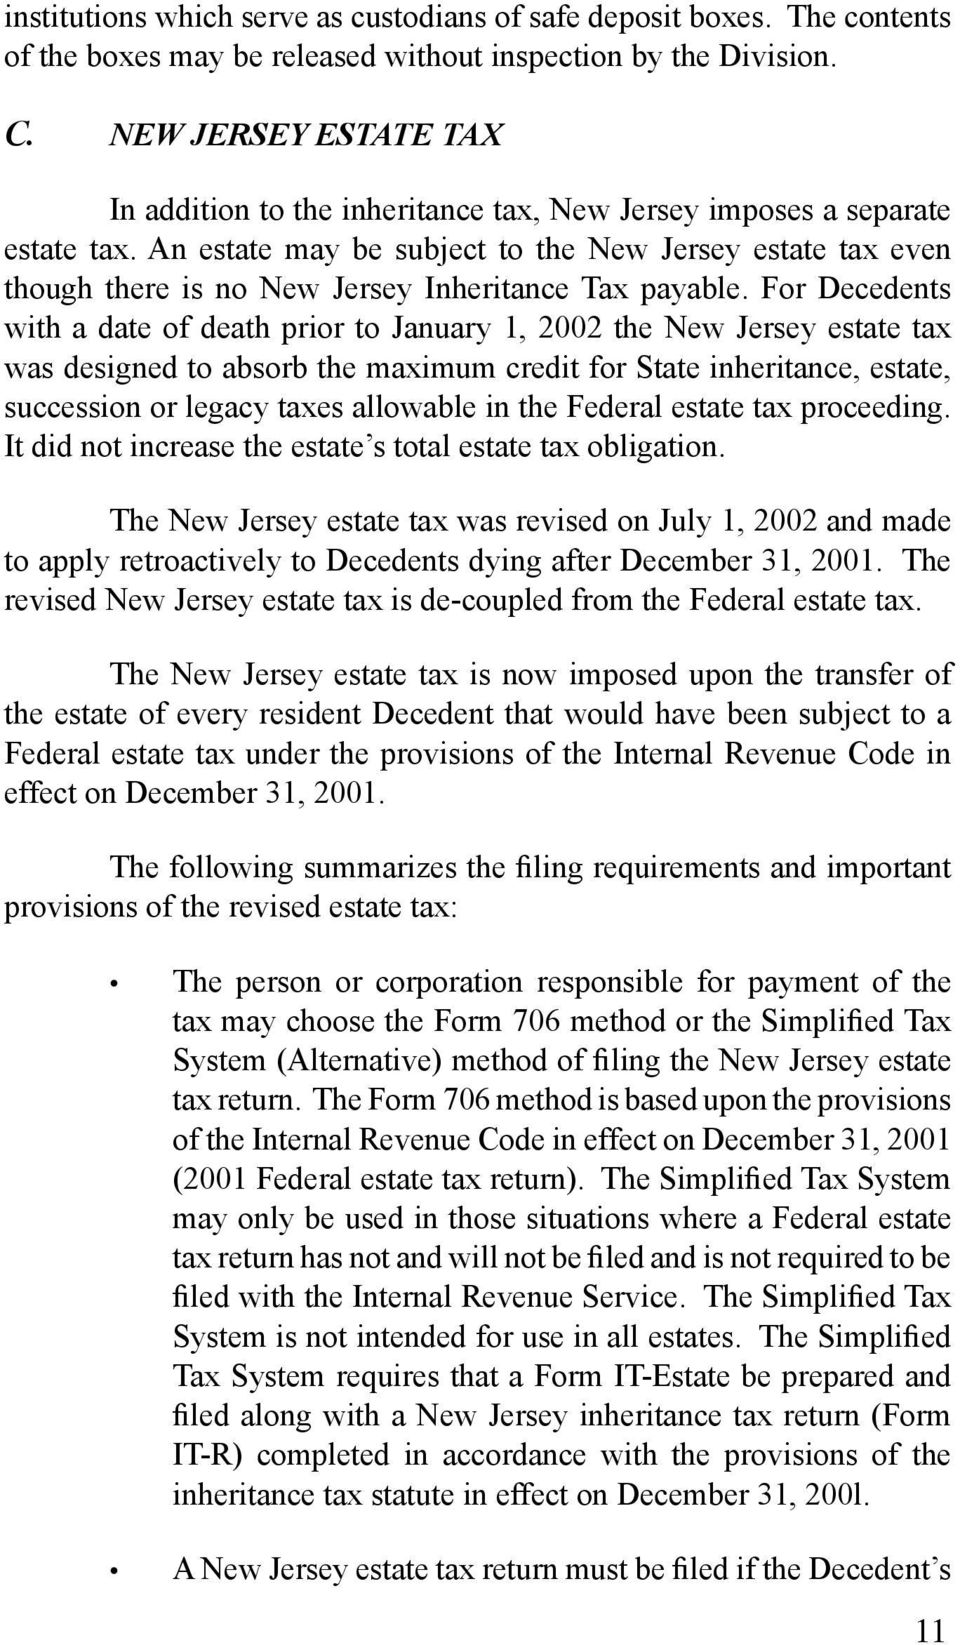 An estate may be subject to the New Jersey estate tax even though there is no New Jersey Inheritance Tax payable.